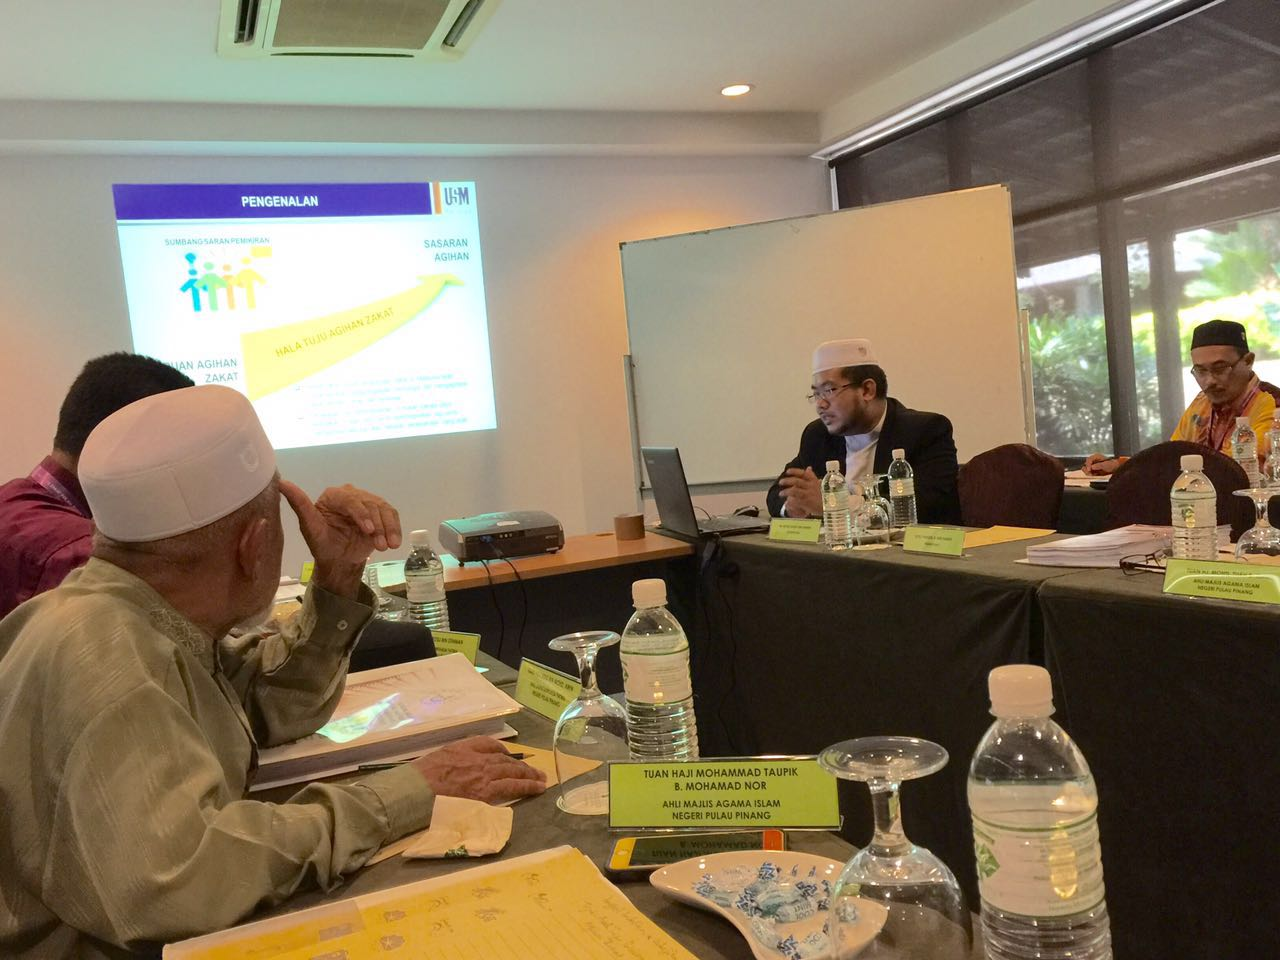 localization of the zakat management In many islamic countries like indonesia, zakat,  localization of the sdgs through partnerships in indonesia  industrial and waste management.